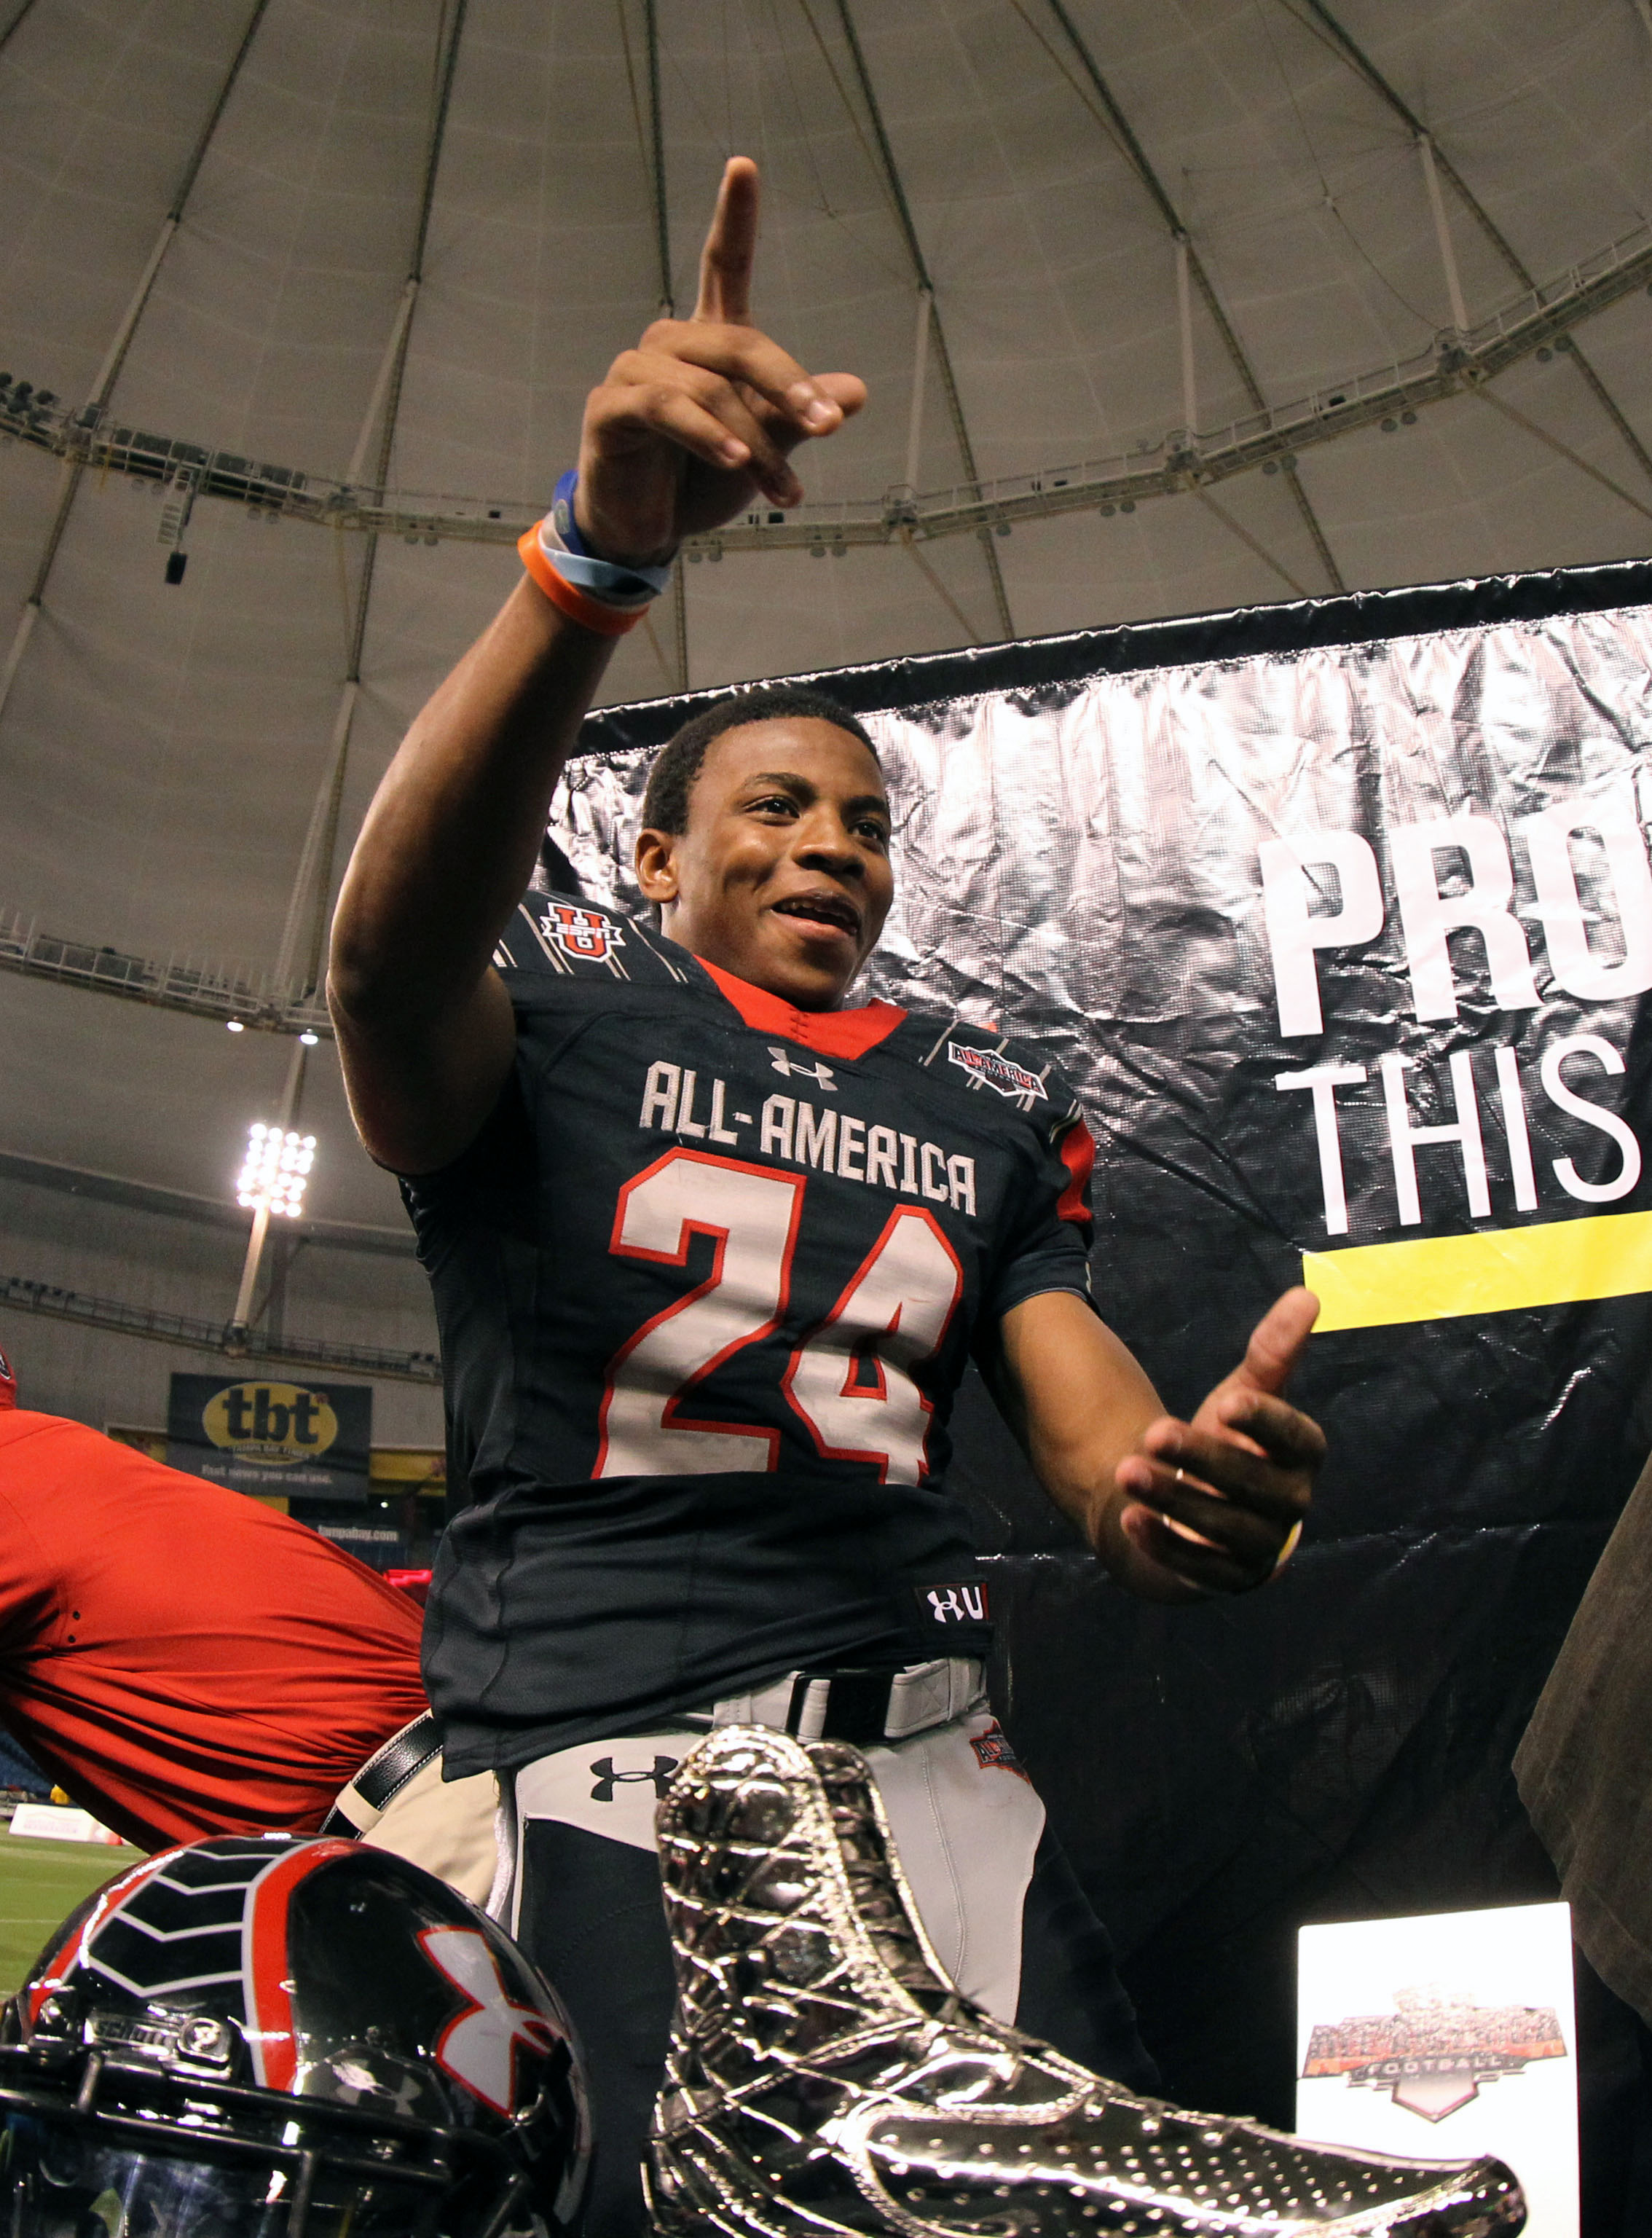 January 4, 2013; St. Petersburg, FL, USA; Team Highlight cornerback Vernon Hargreaves III (24) reacts after he won MVP of Team Highlight after the game at the Under Armour All-America high school Game at Tropicana Field. Team Highlight defeated the Team Nitro 16-3. Mandatory Credit: Kim Klement-USA TODAY Sports ORG XMIT: USATSI-120284 ORIG FILE ID: 20130104_kkt_sv7_061.jpg